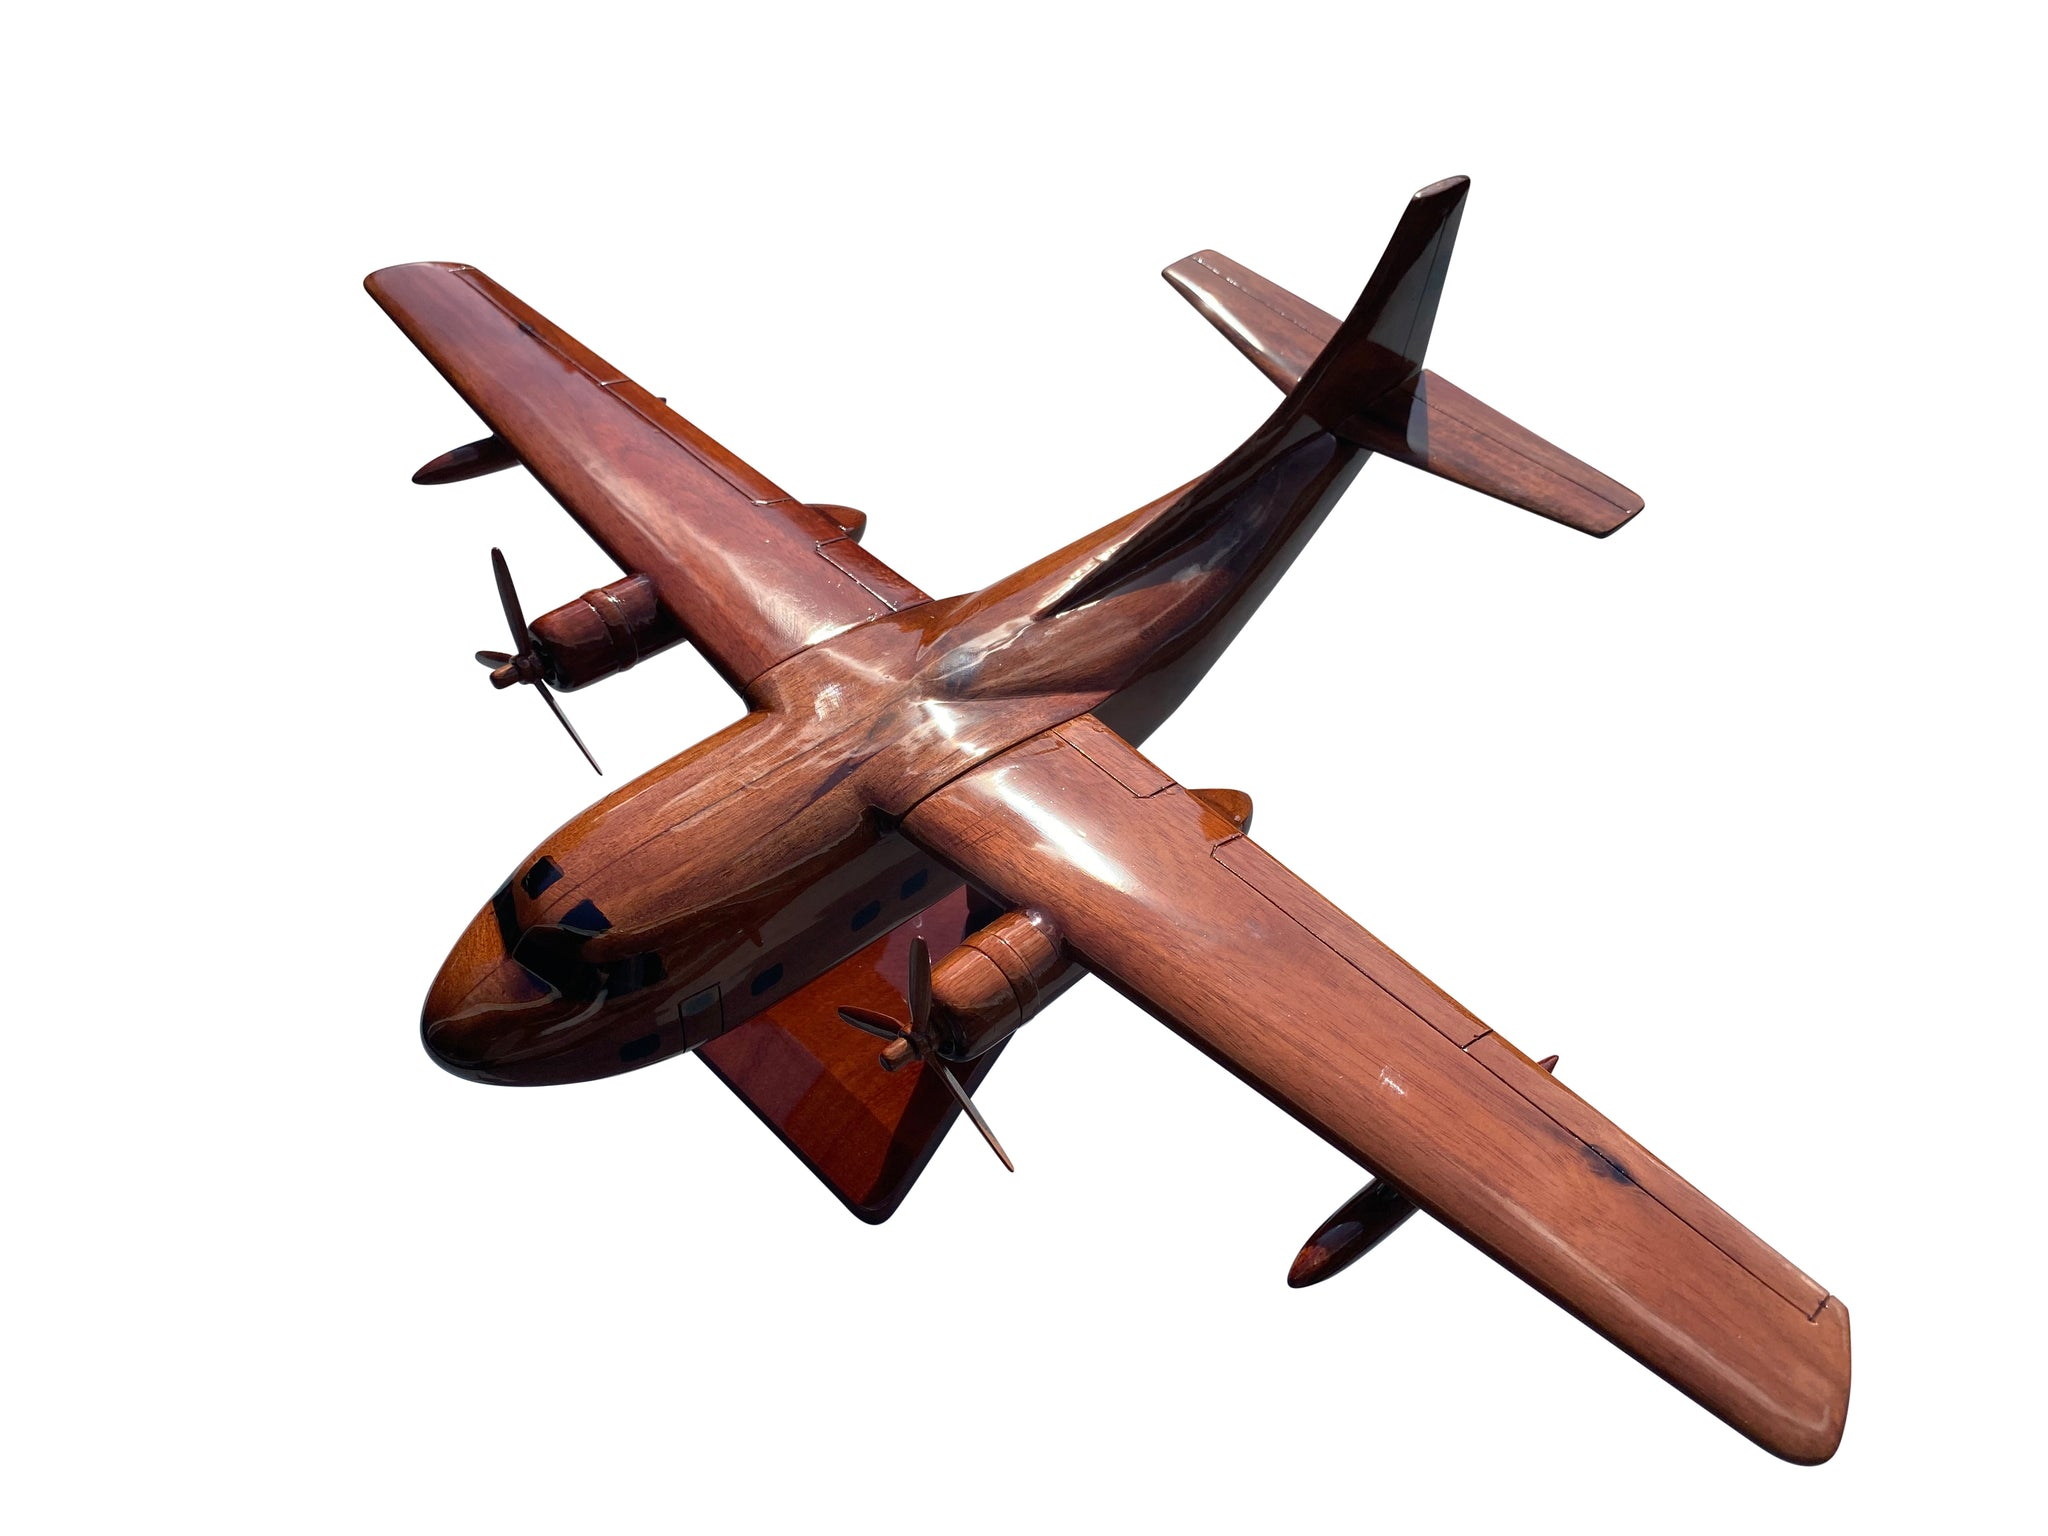 A-3 Skywarrior Mahogany Wood Desktop Airplane Model